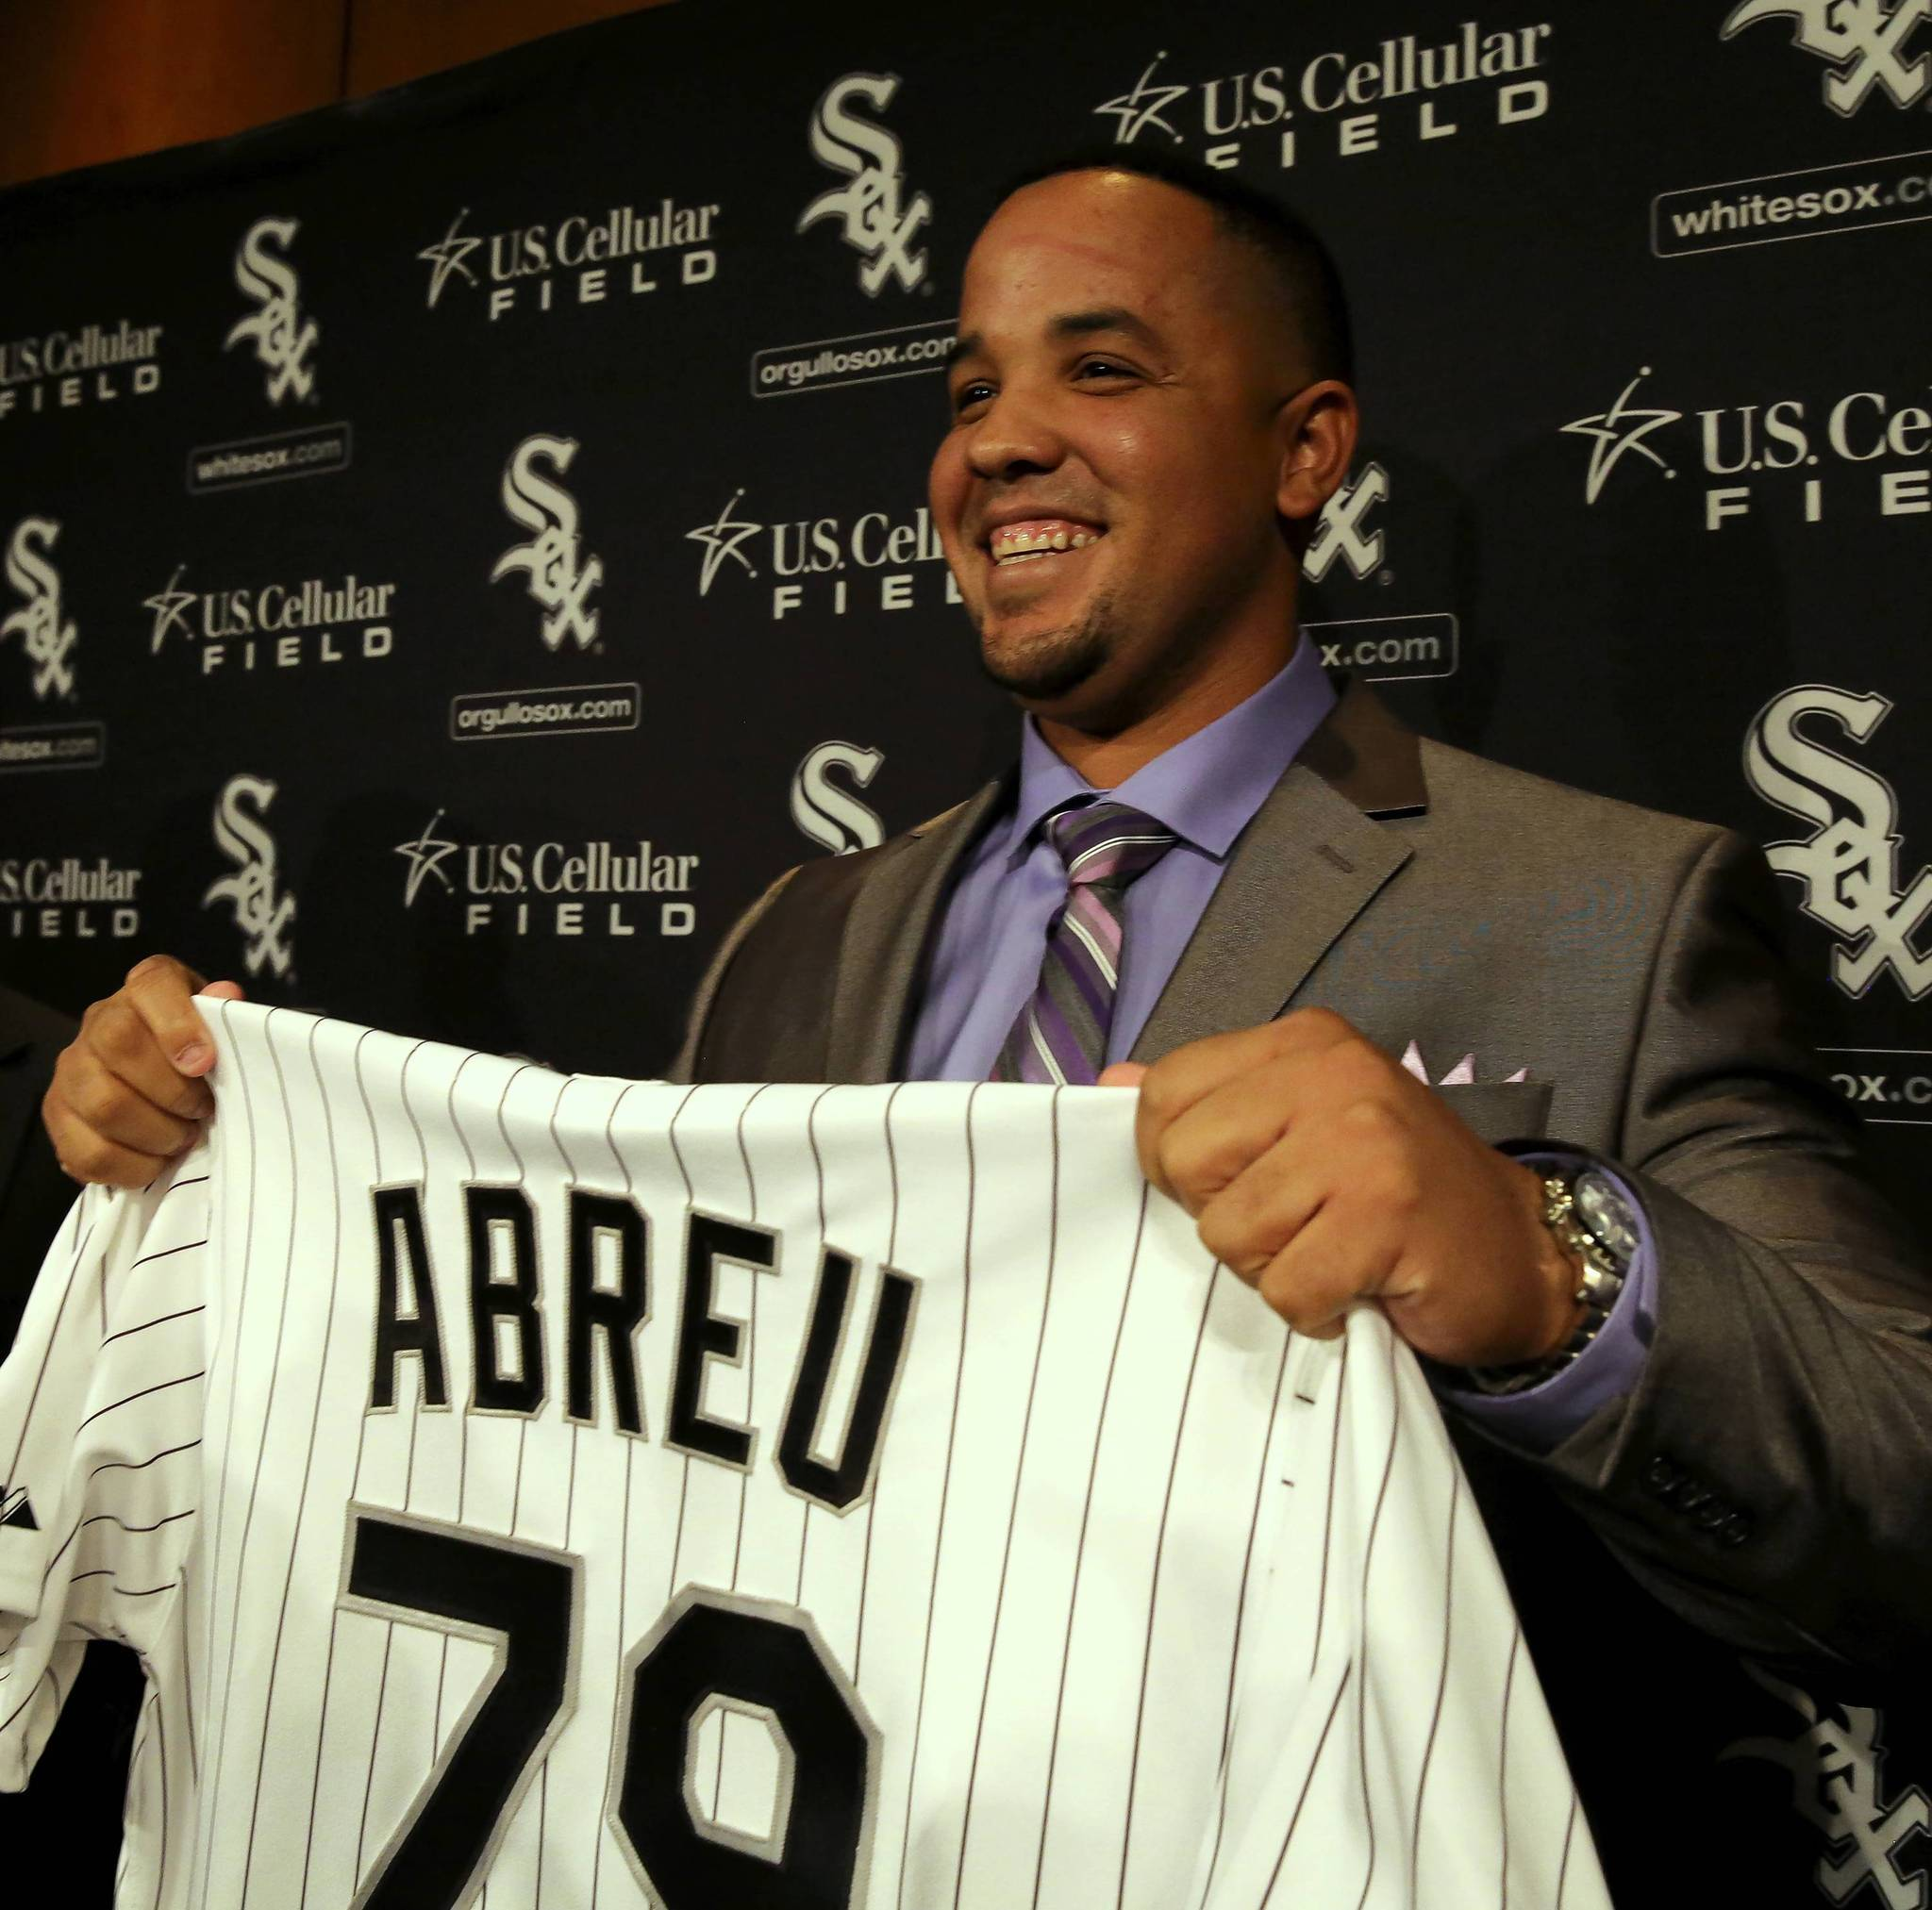 White Sox roster outlook for 2019: Who's likely to return and who's likely to depart